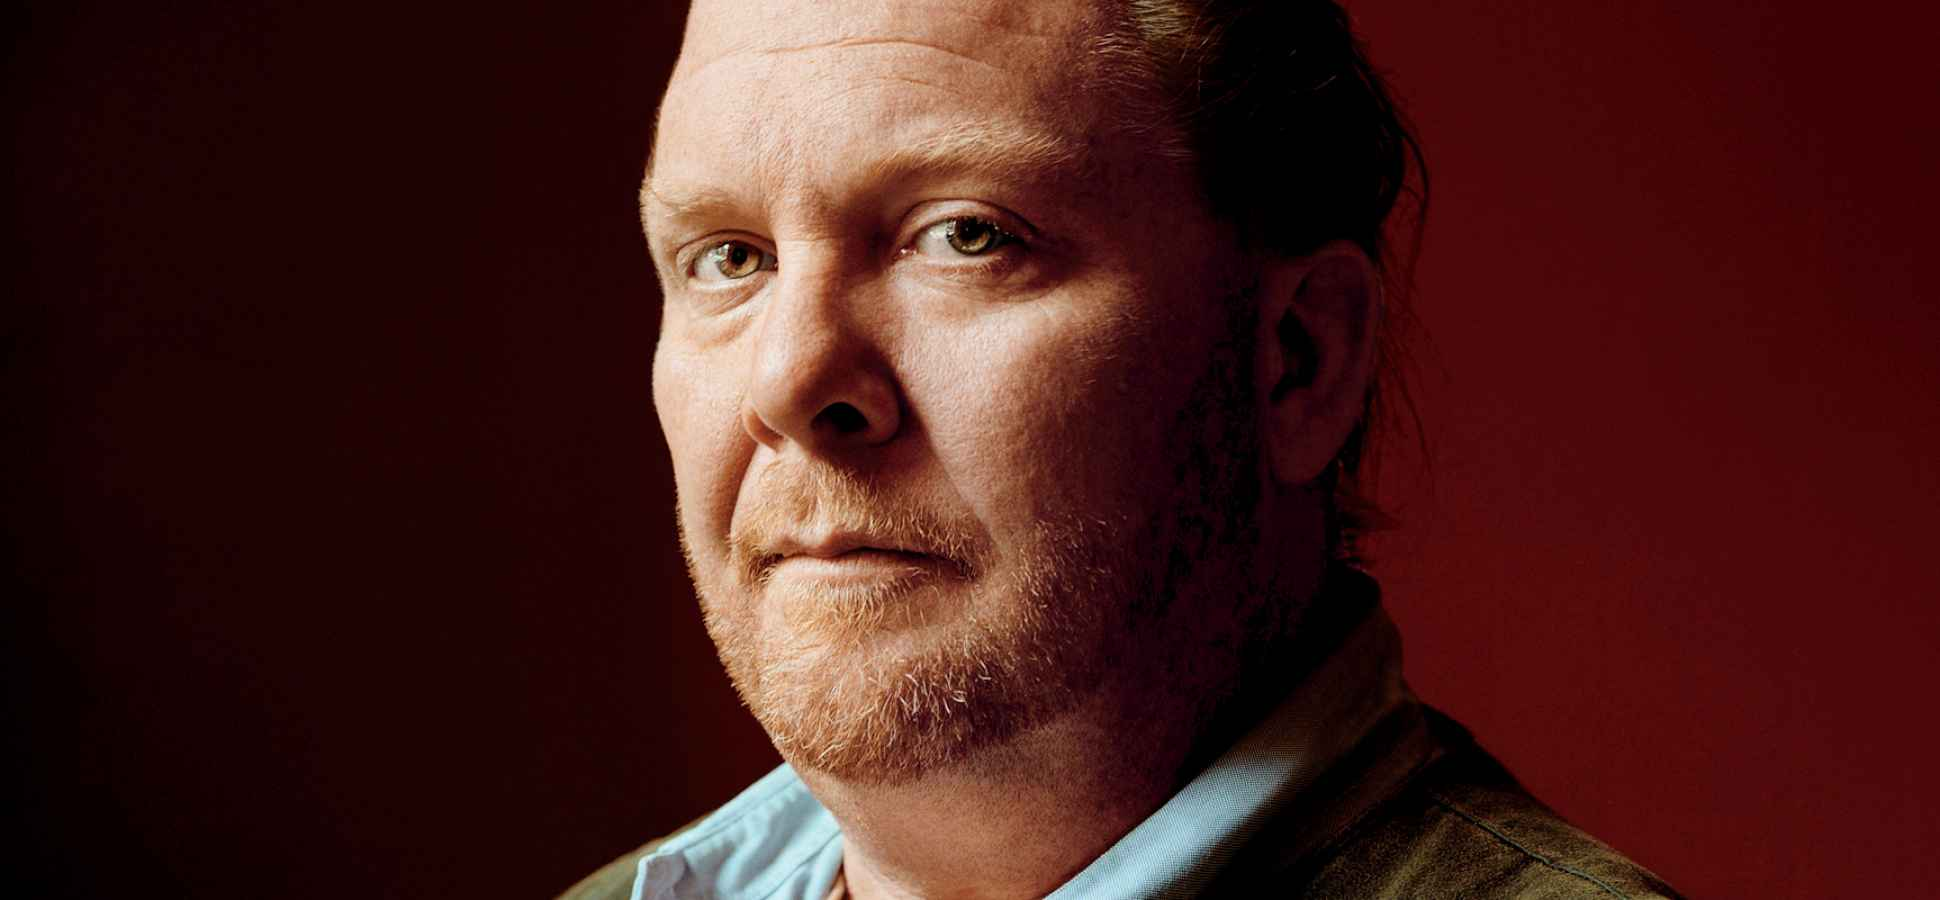 7 Questions for Restaurateur Mario Batali